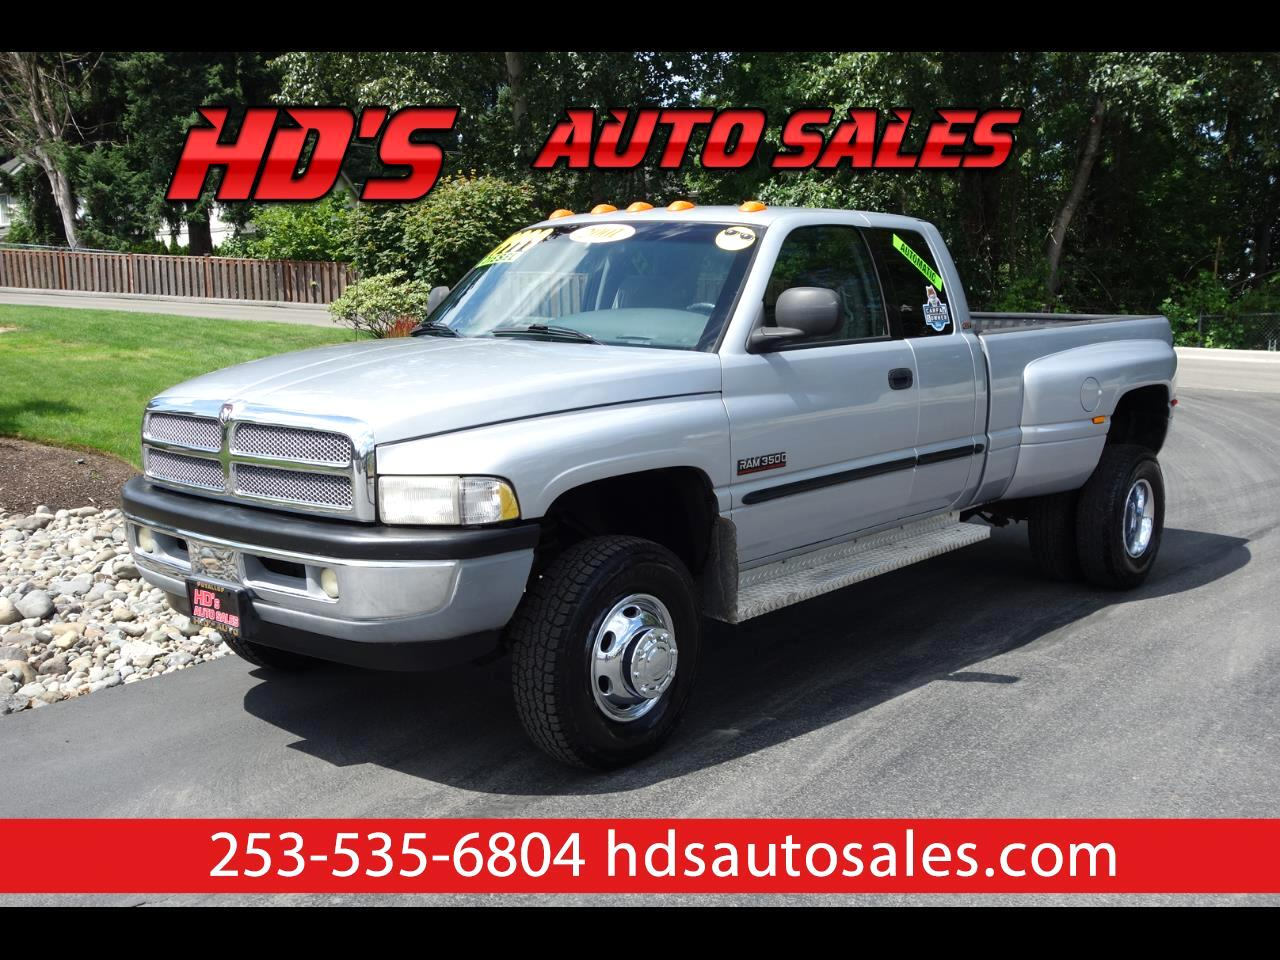 2001 Dodge Ram 3500 Quad Cab Long Bed DRW